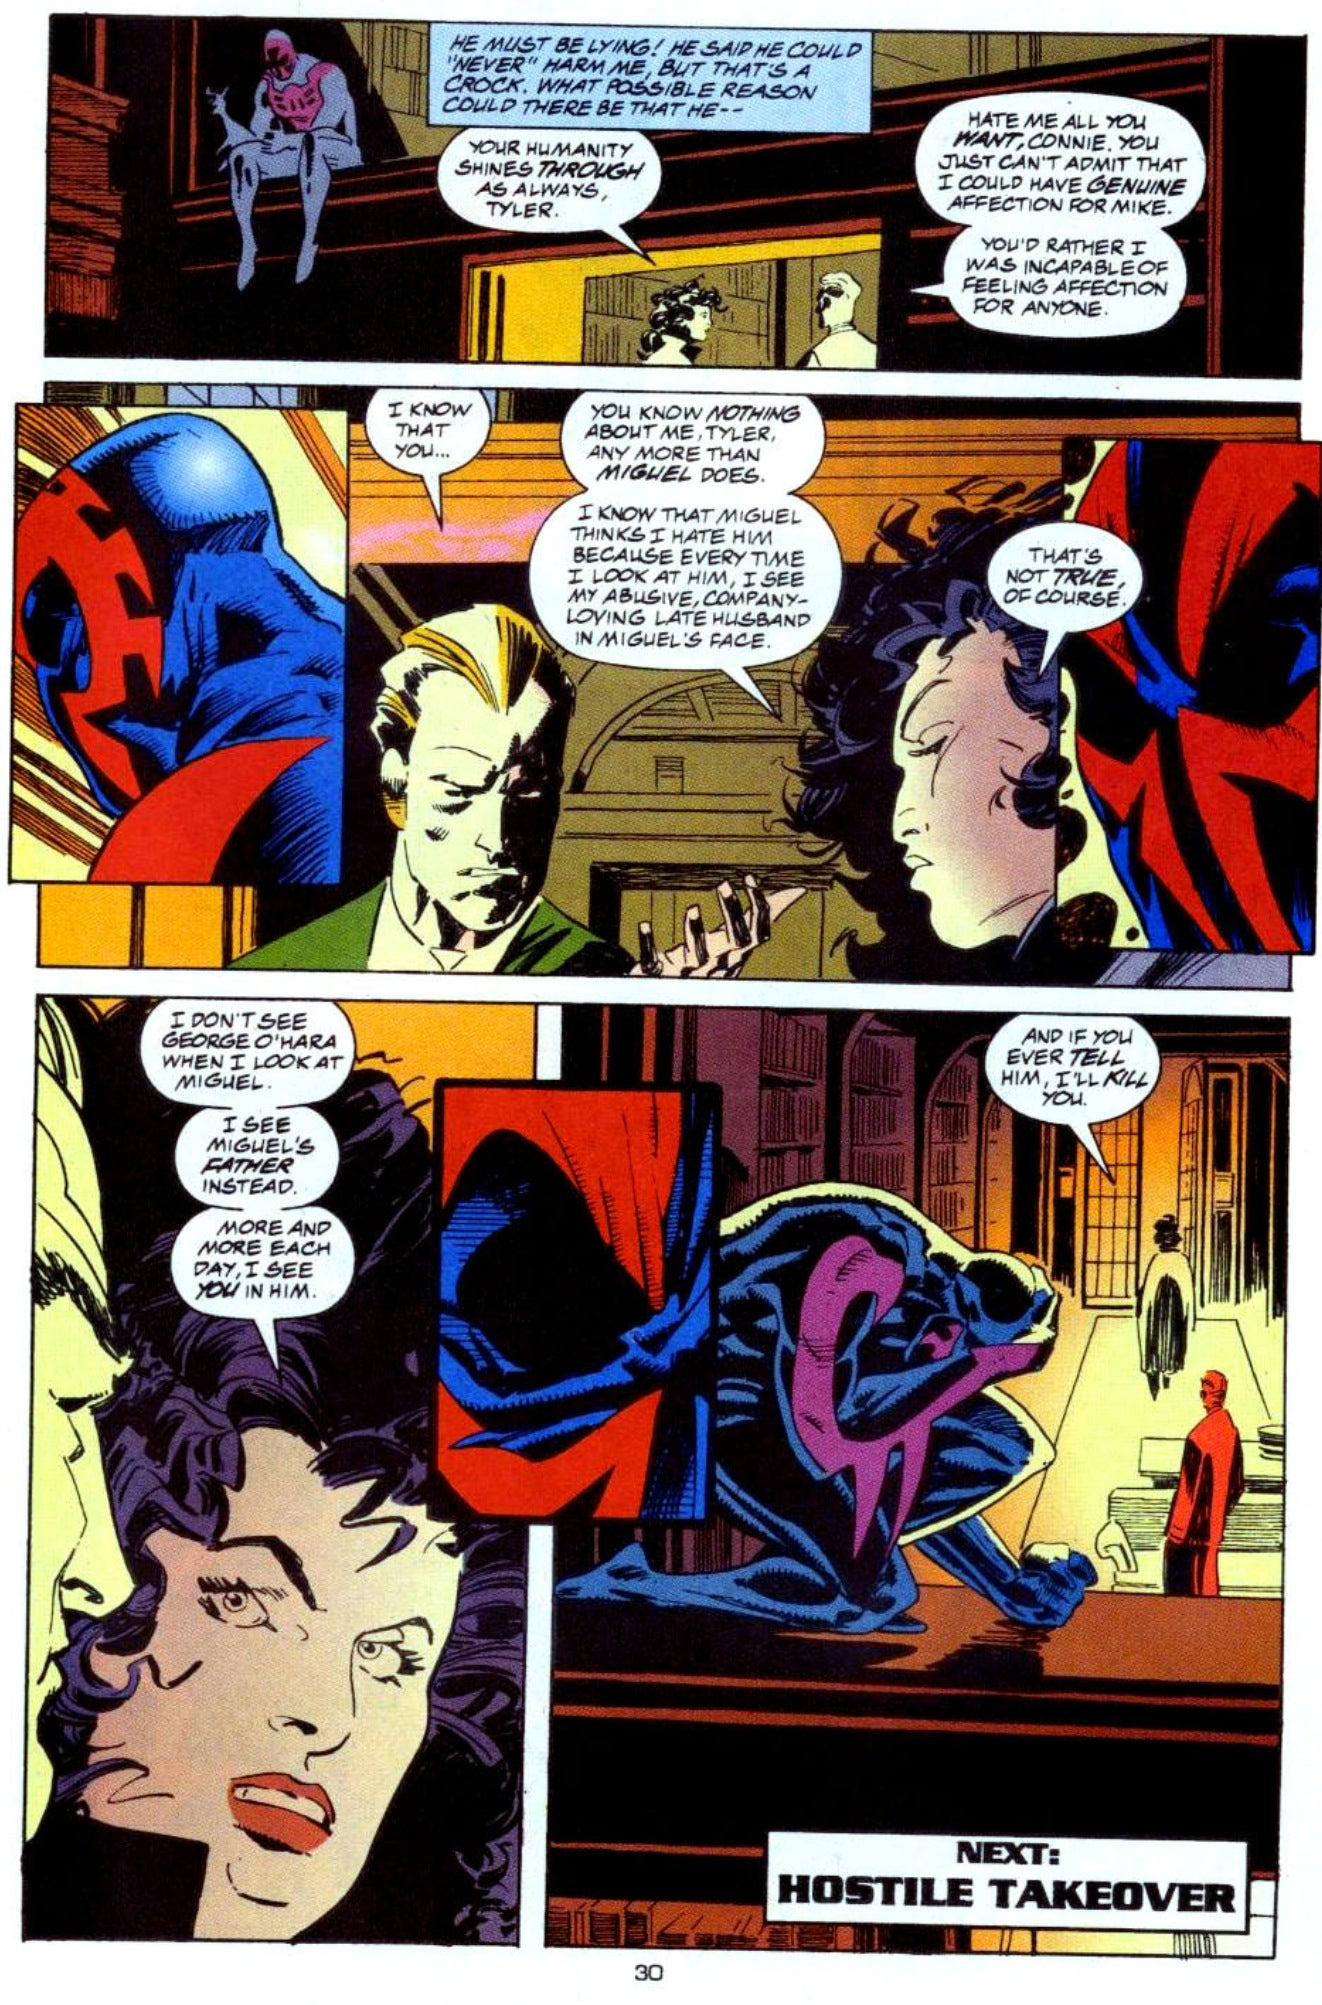 Party Like It's 2099 - 10 Great Moments From the Original Spider-Man